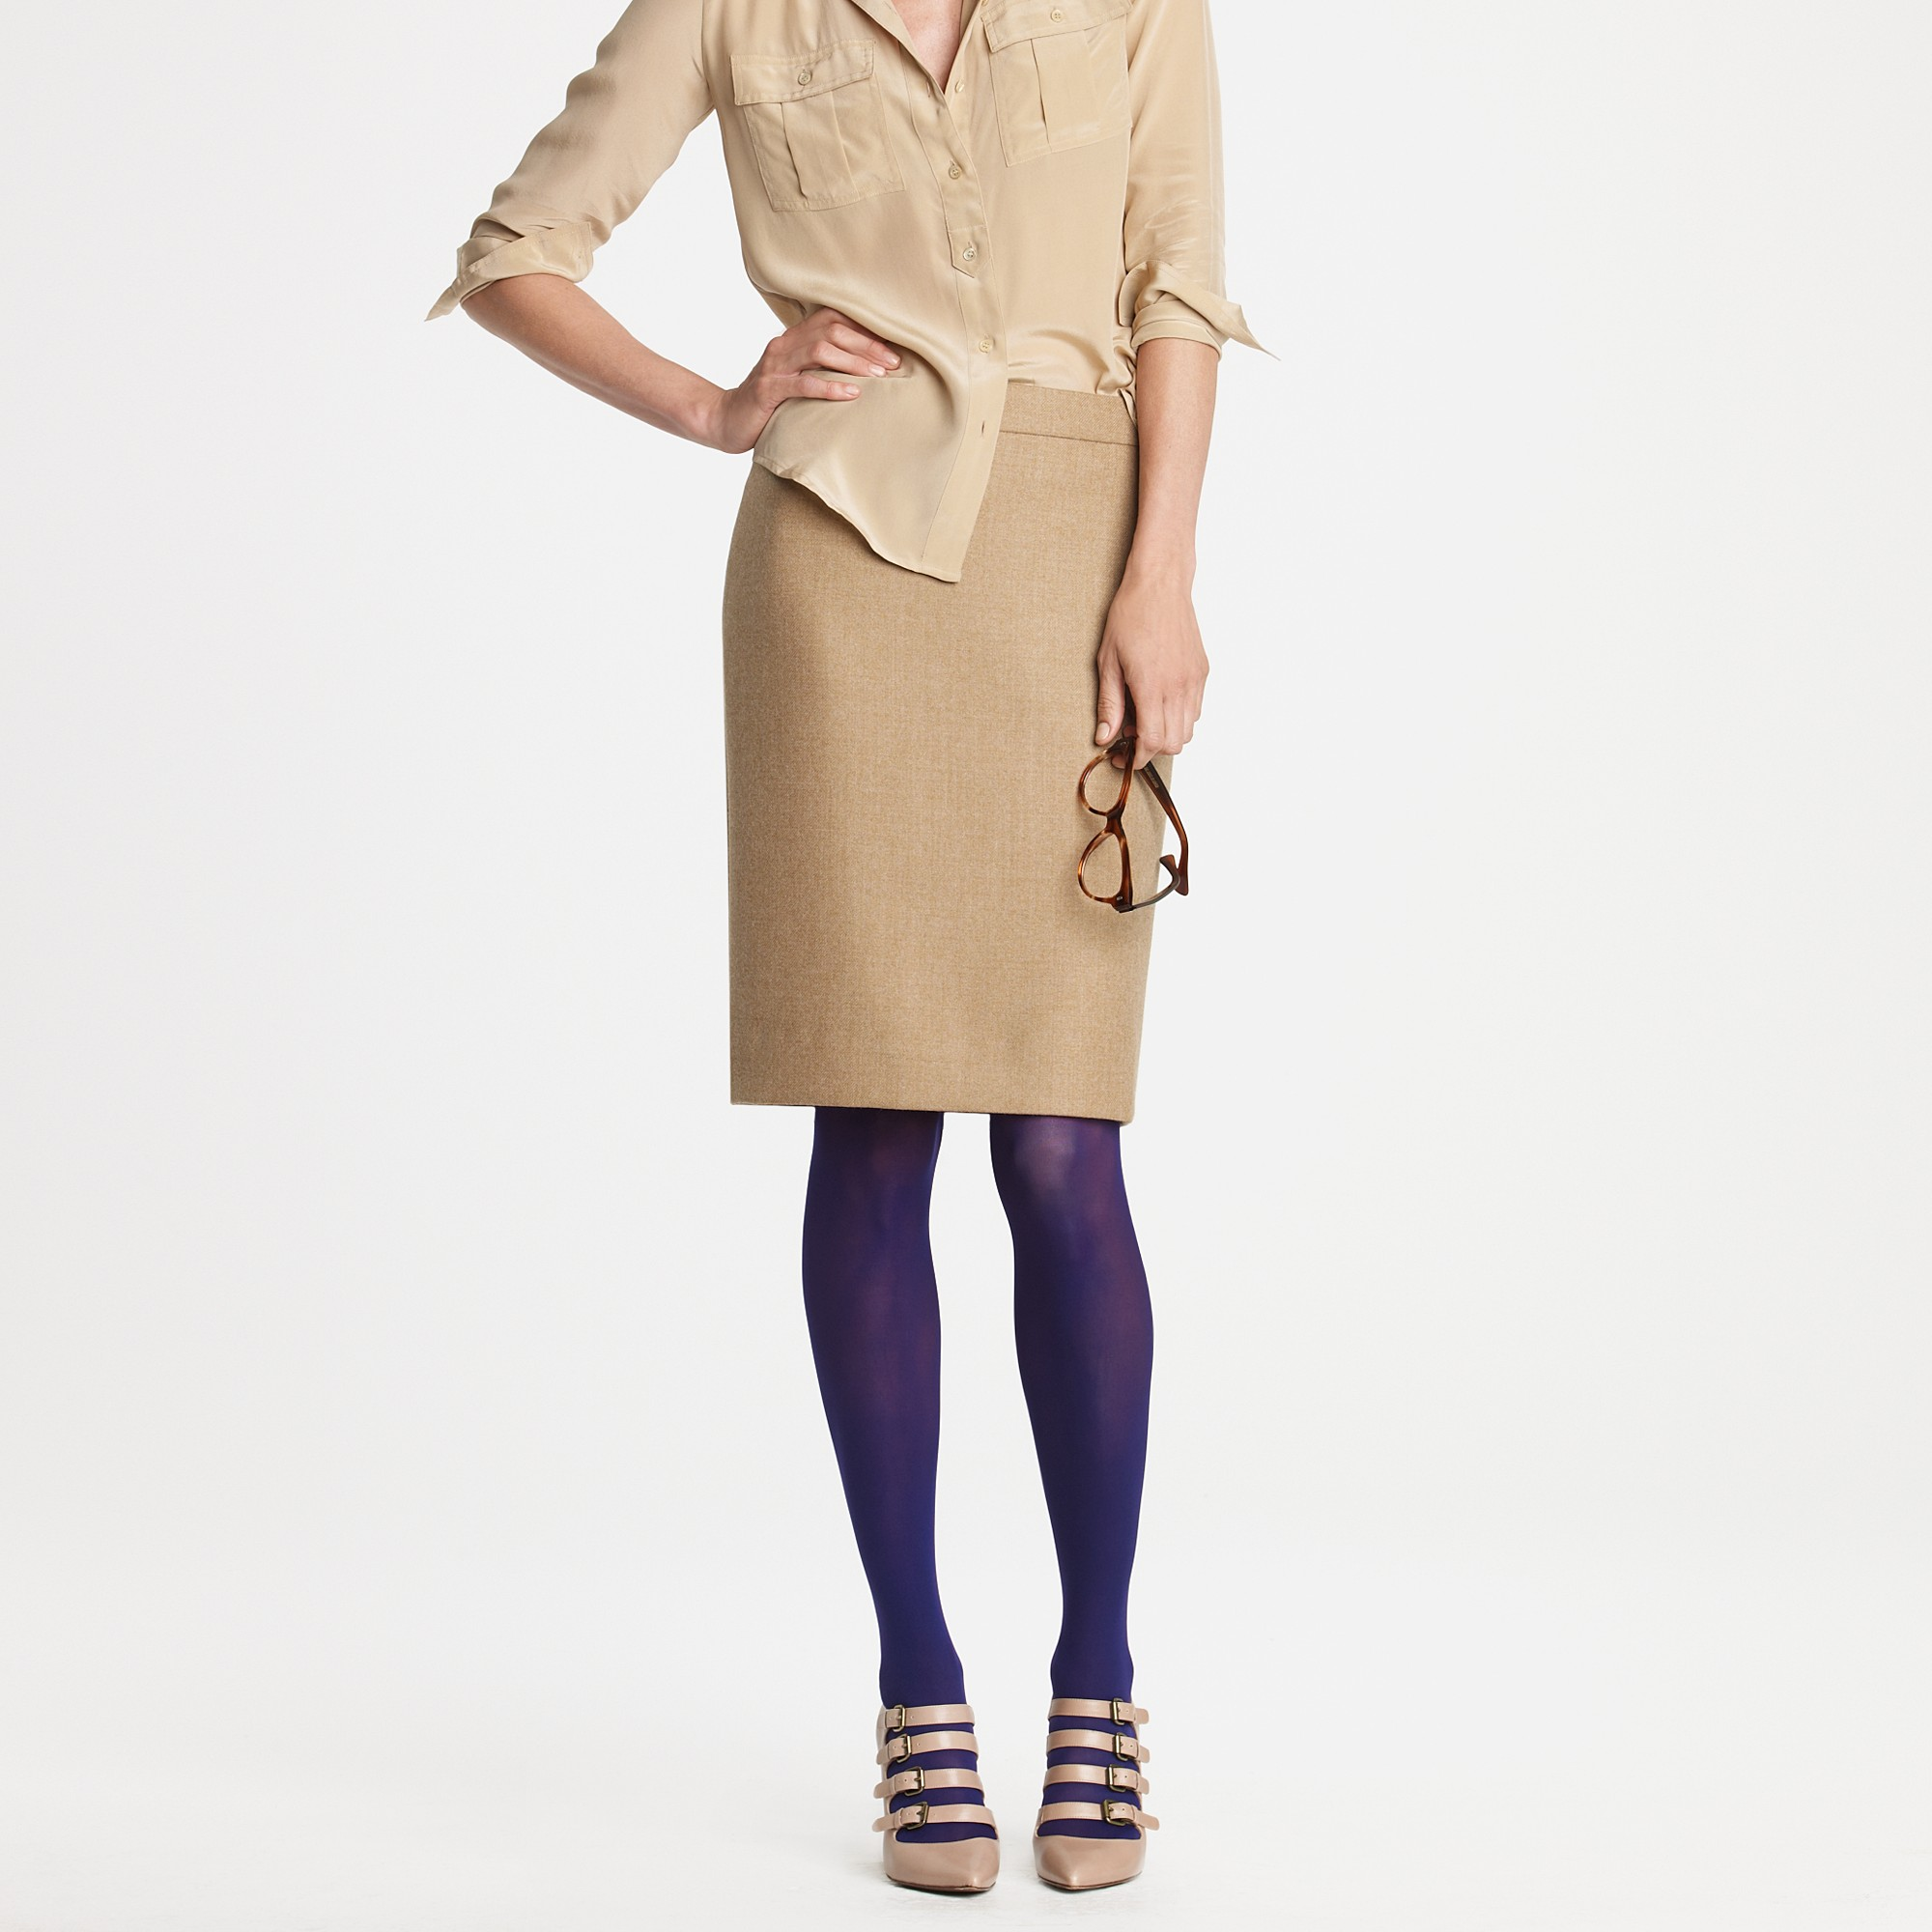 f585744efee Lyst - J.Crew Solid Opaque Tights in Purple